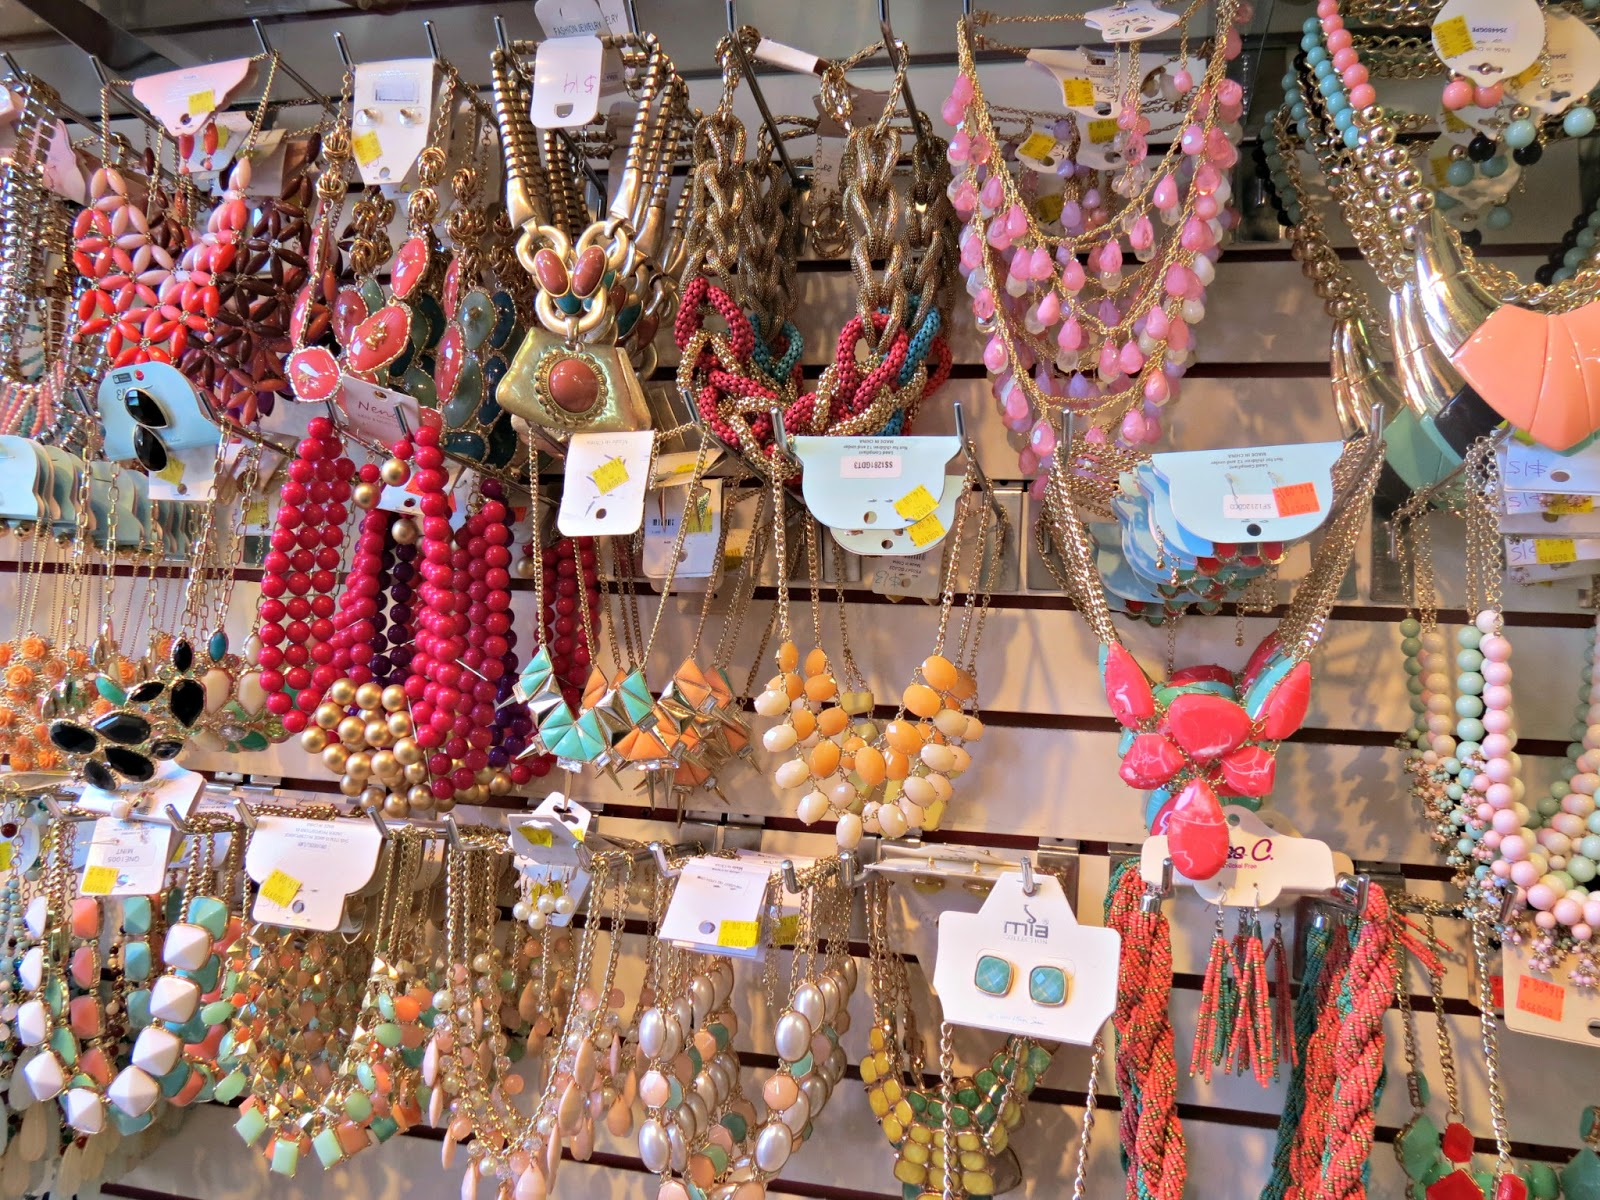 Wholesale Fashion Jewelry District Los Angeles